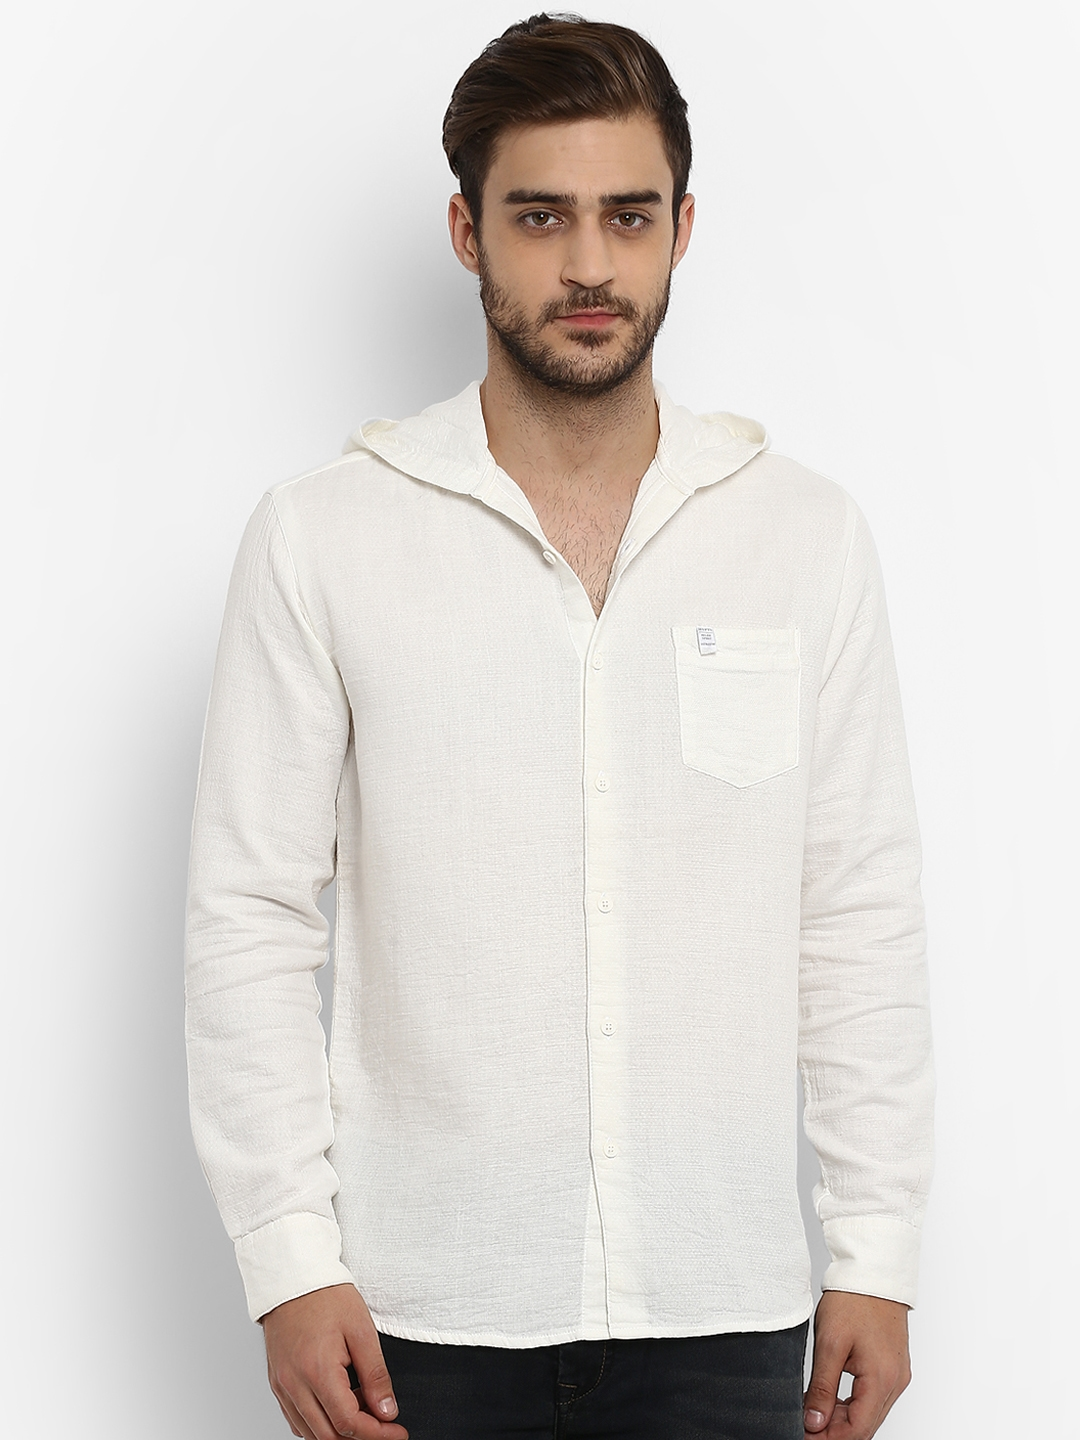 52a39e2b7e Buy Mufti Men White Slim Fit Solid Casual Hooded Shirt - Shirts for ...